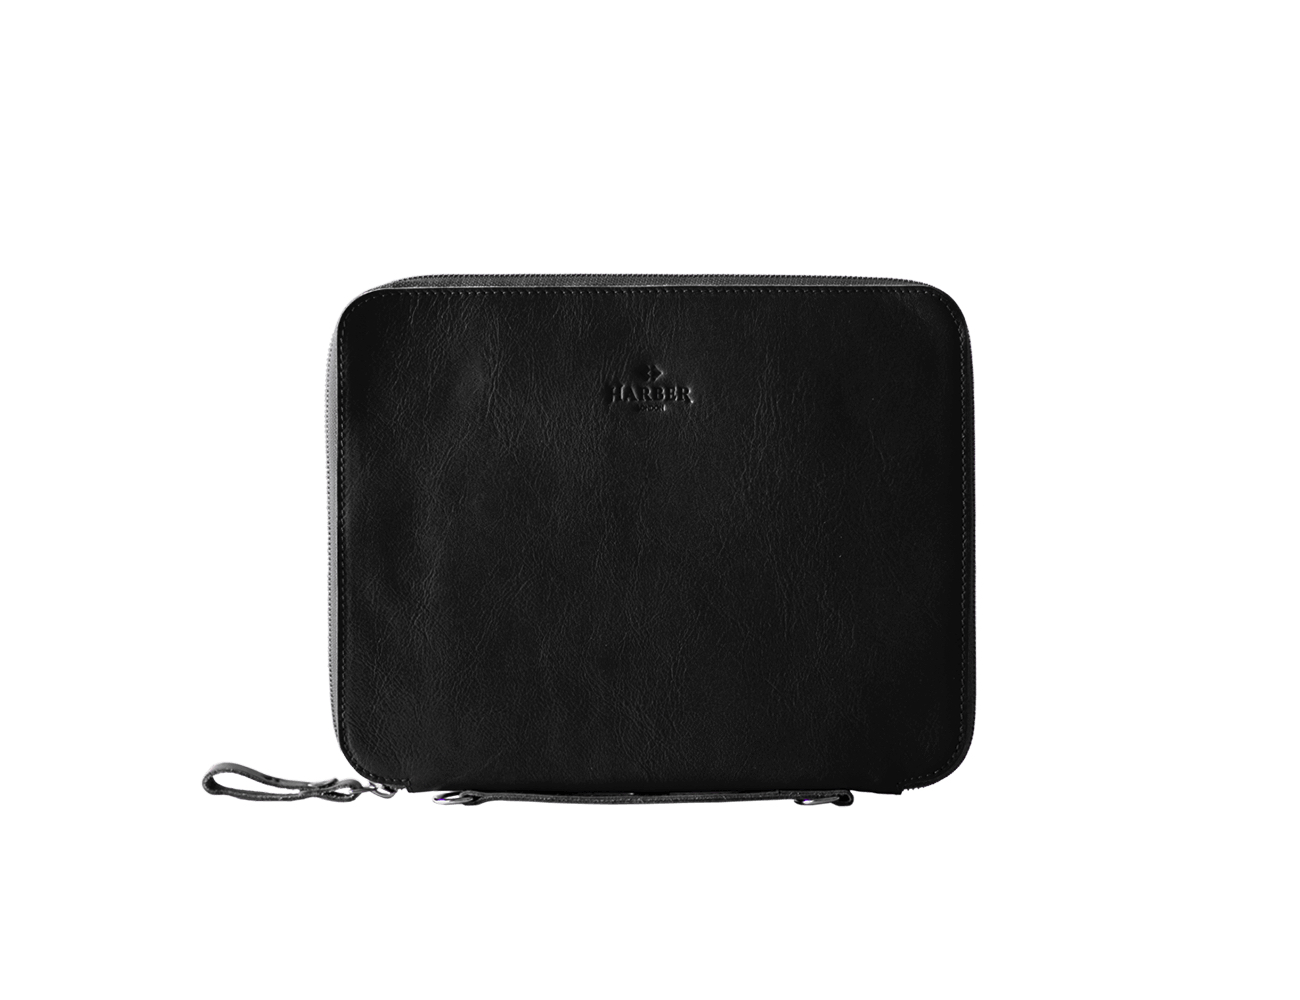 Nomad Leather iPad Pro Organizer